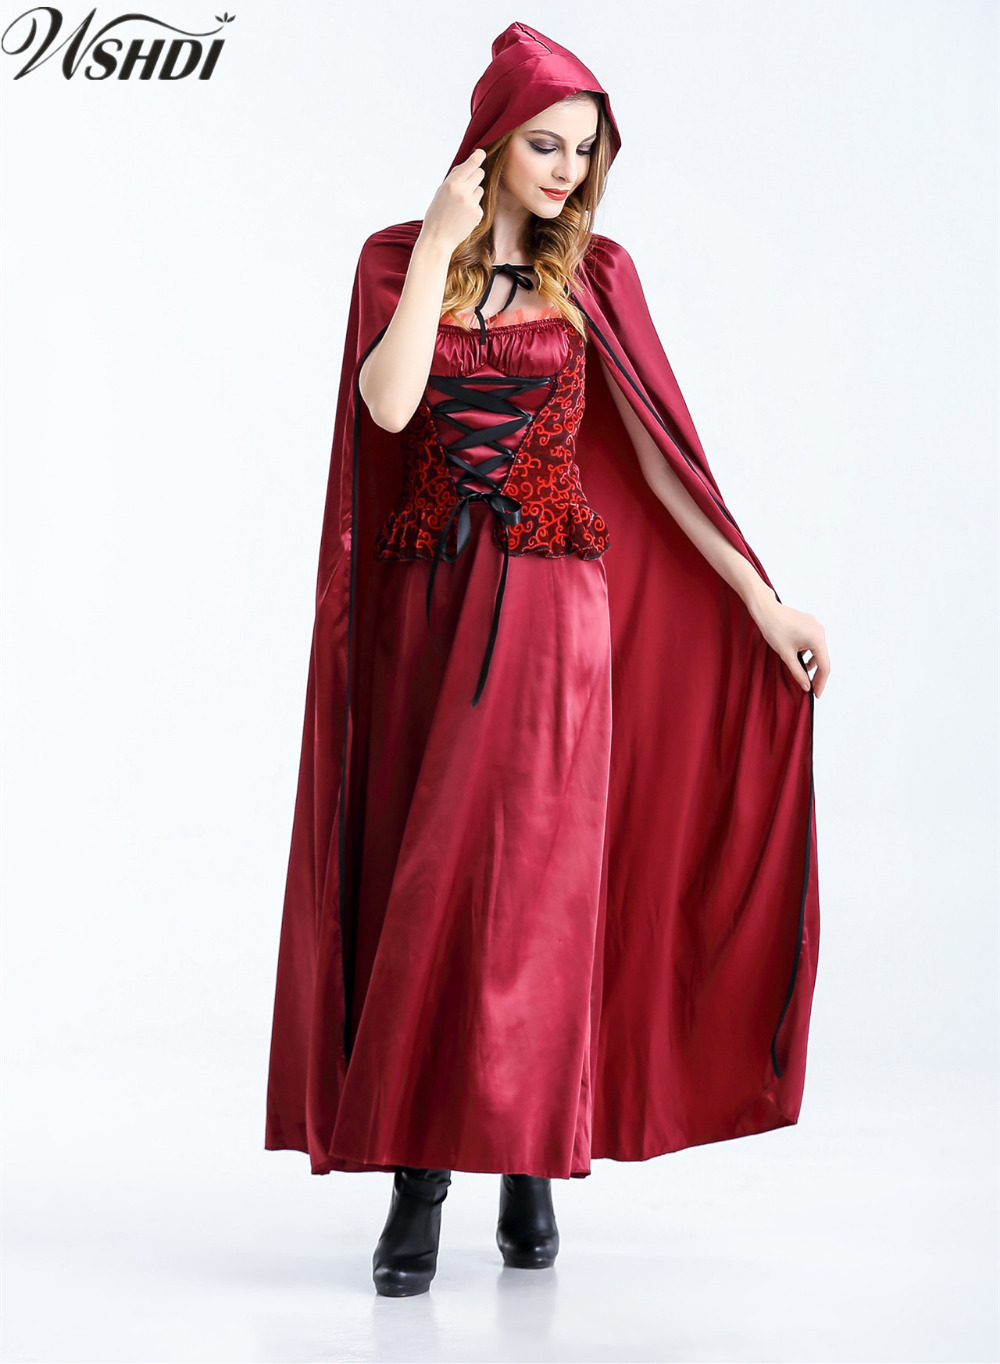 Sexy Women Little Red Riding Hood Costume Adult Ladies Halloween Cosplay Witch Vampire -9316